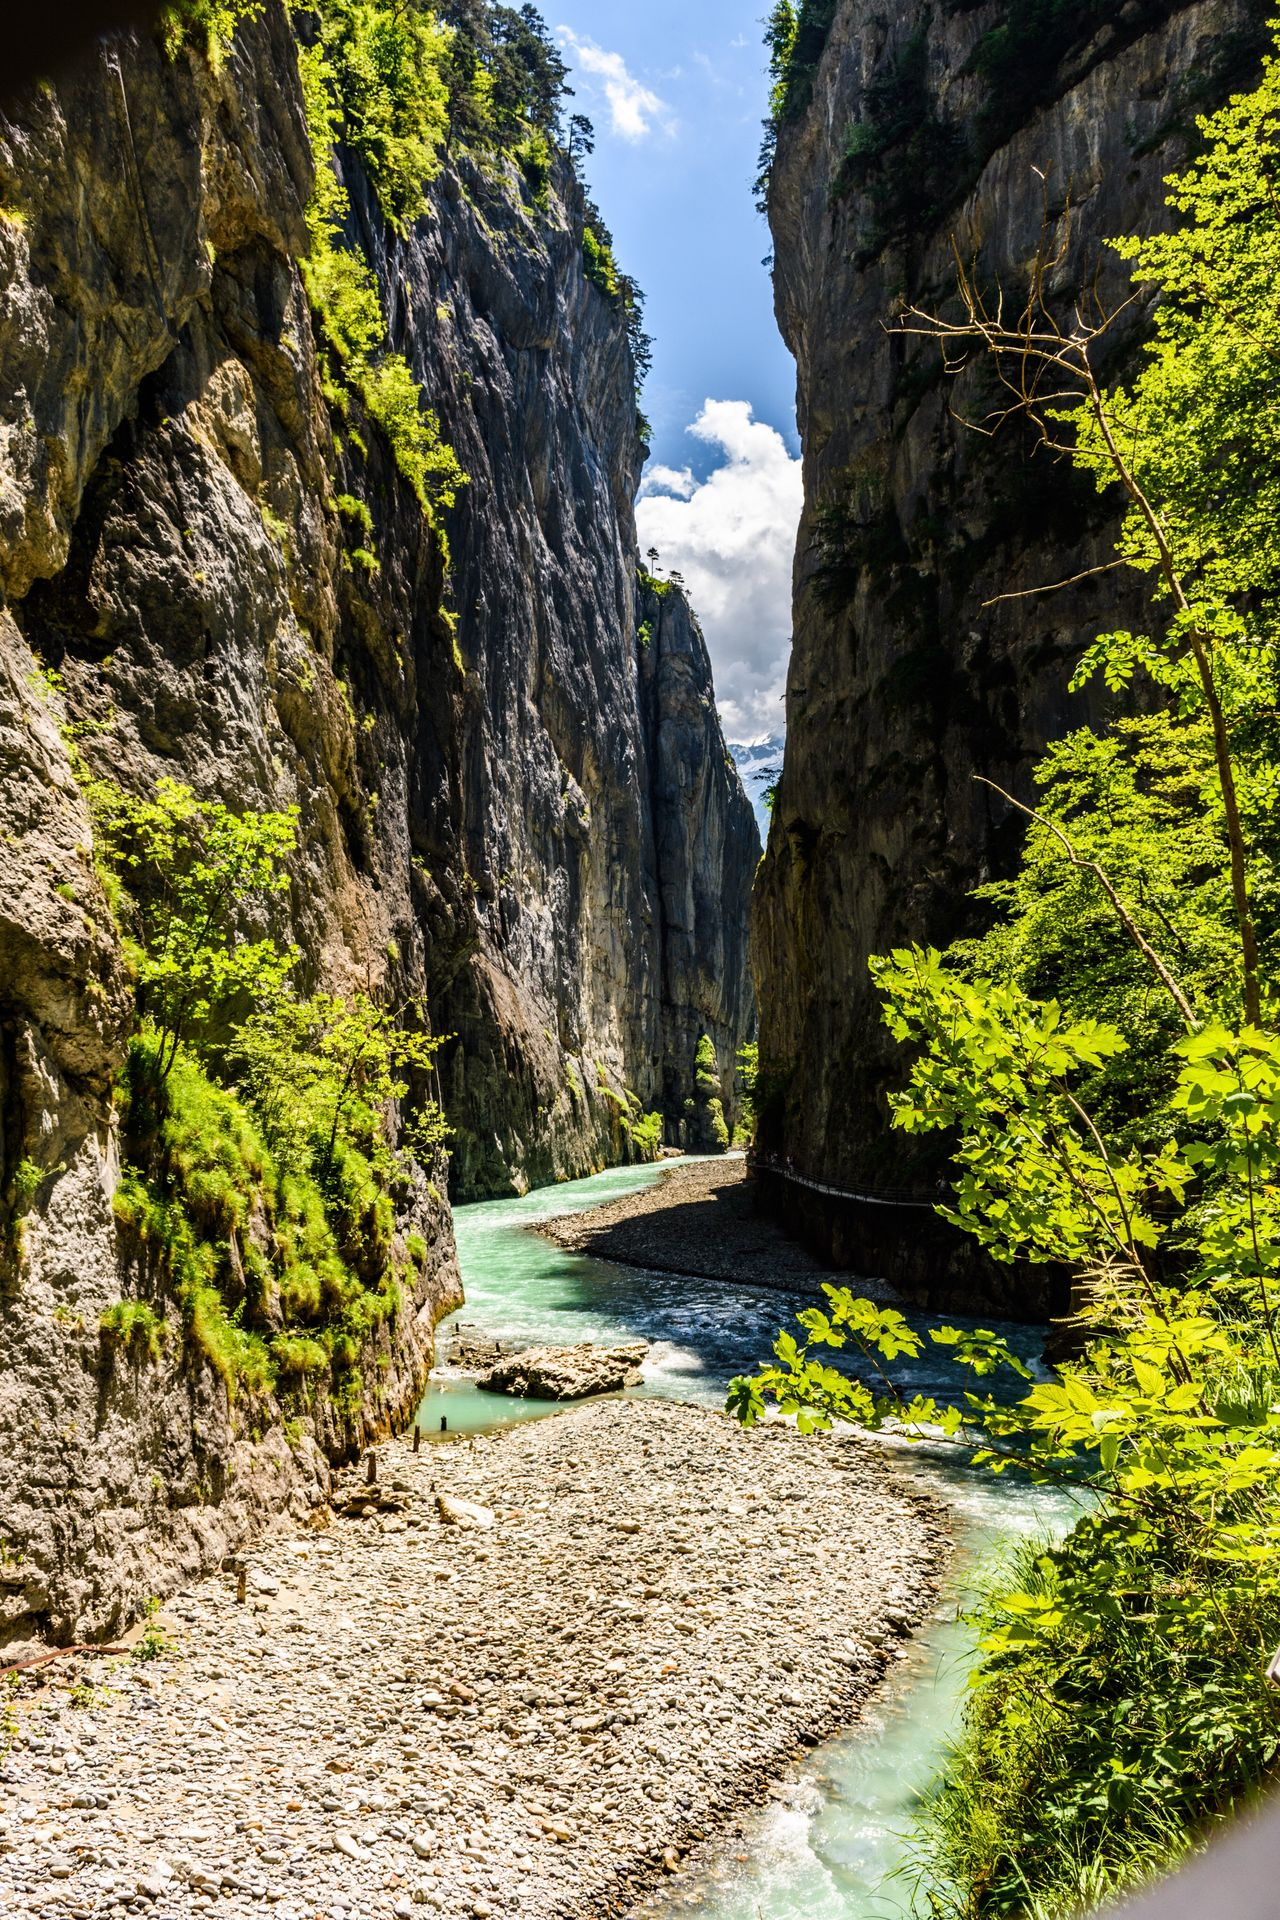 Aareschlucht Aarelandschaft Schlucht Fluss Flusslandschaft Rock - Object Rock Formation Nature Water Outdoors Beauty In Nature River No People Cliff Naturpur Landscape Switzerland Meiringen Berner Oberland Scenics Myswitzerland